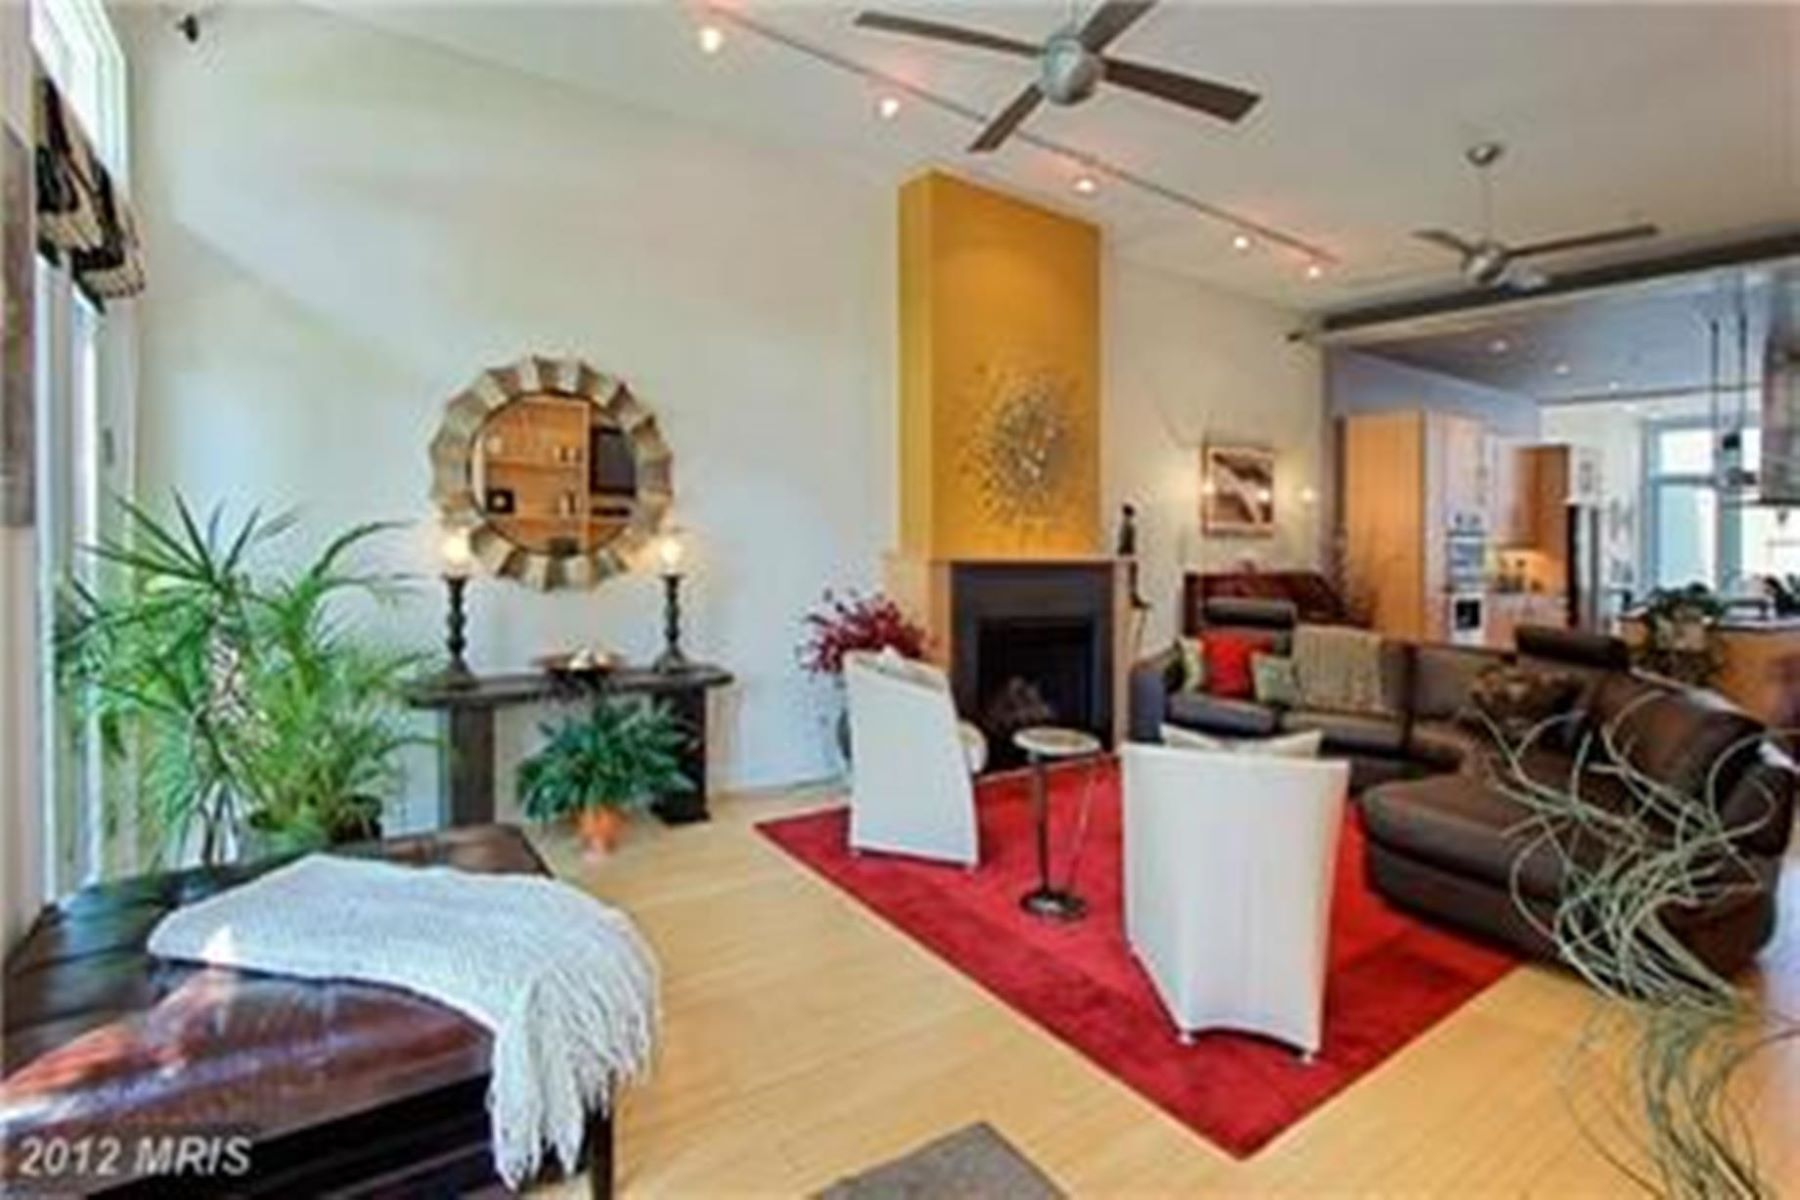 Condominium for Rent at 1621 12th St Nw #1 1621 12th St Nw #1 Washington, District Of Columbia 20009 United States